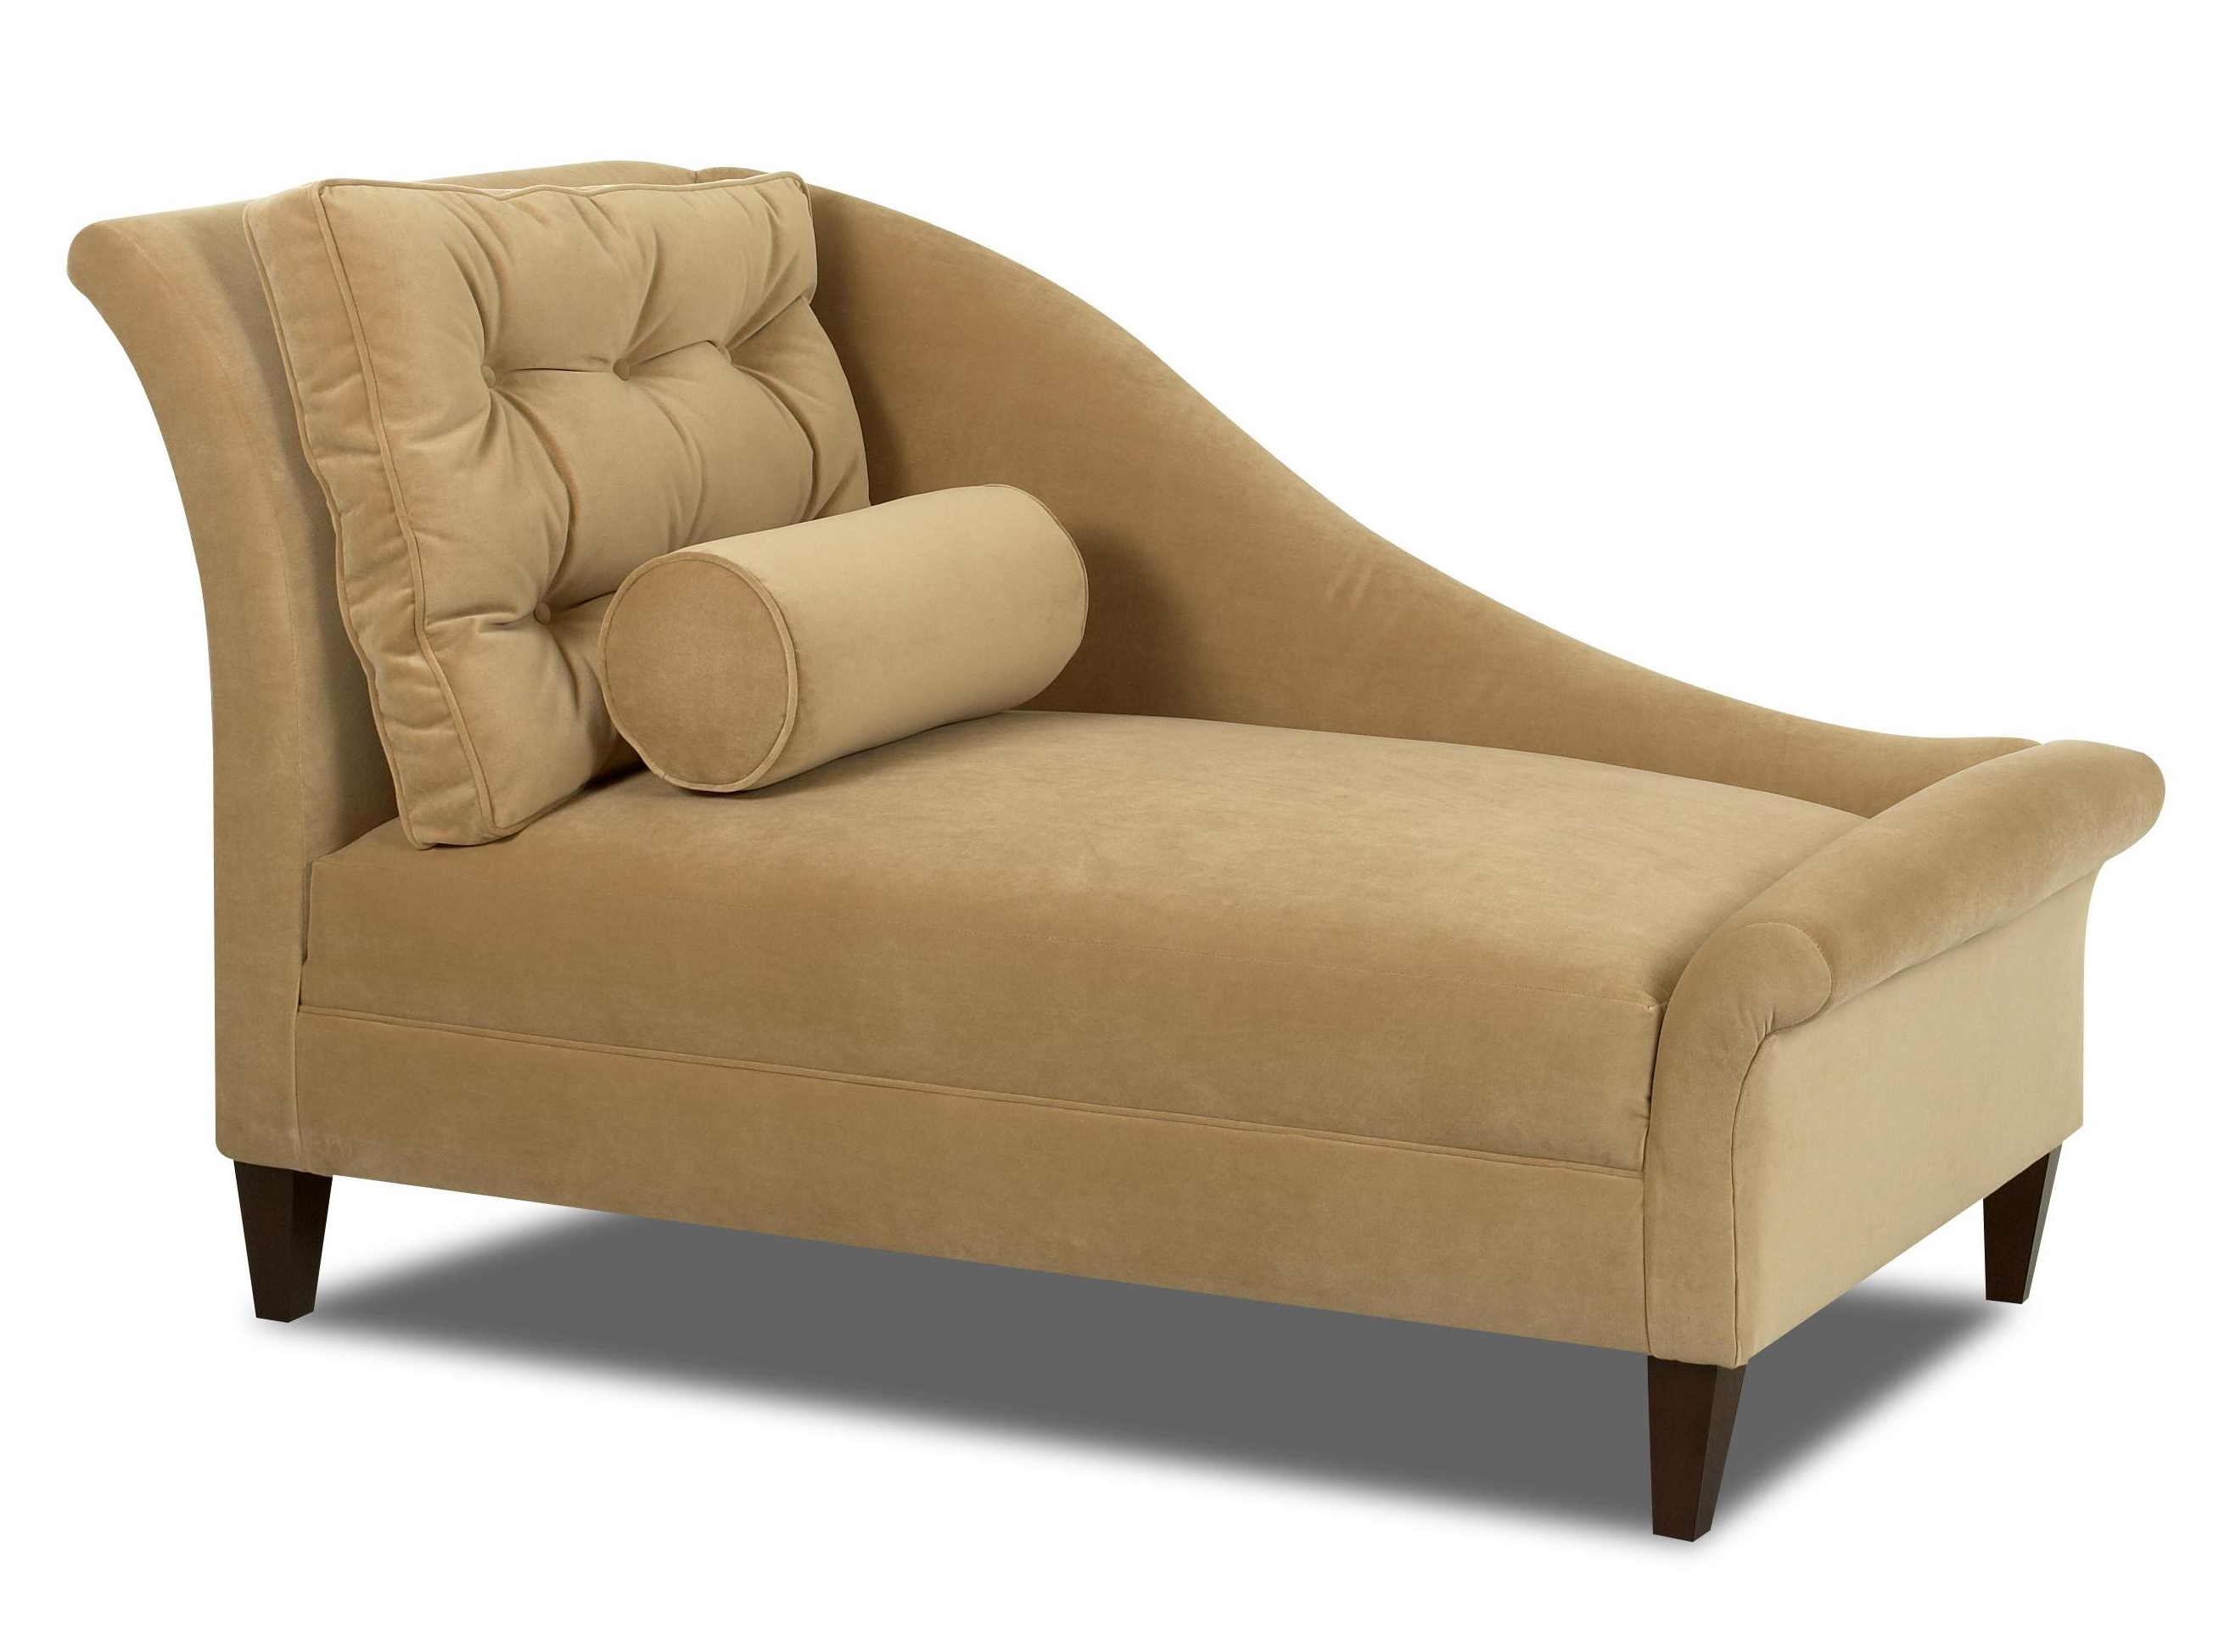 Inexpensive Chaise Lounges Regarding Most Current Convertible Chair : Small Chaise Lounge Chair Tufted Chaise Lounge (View 7 of 15)